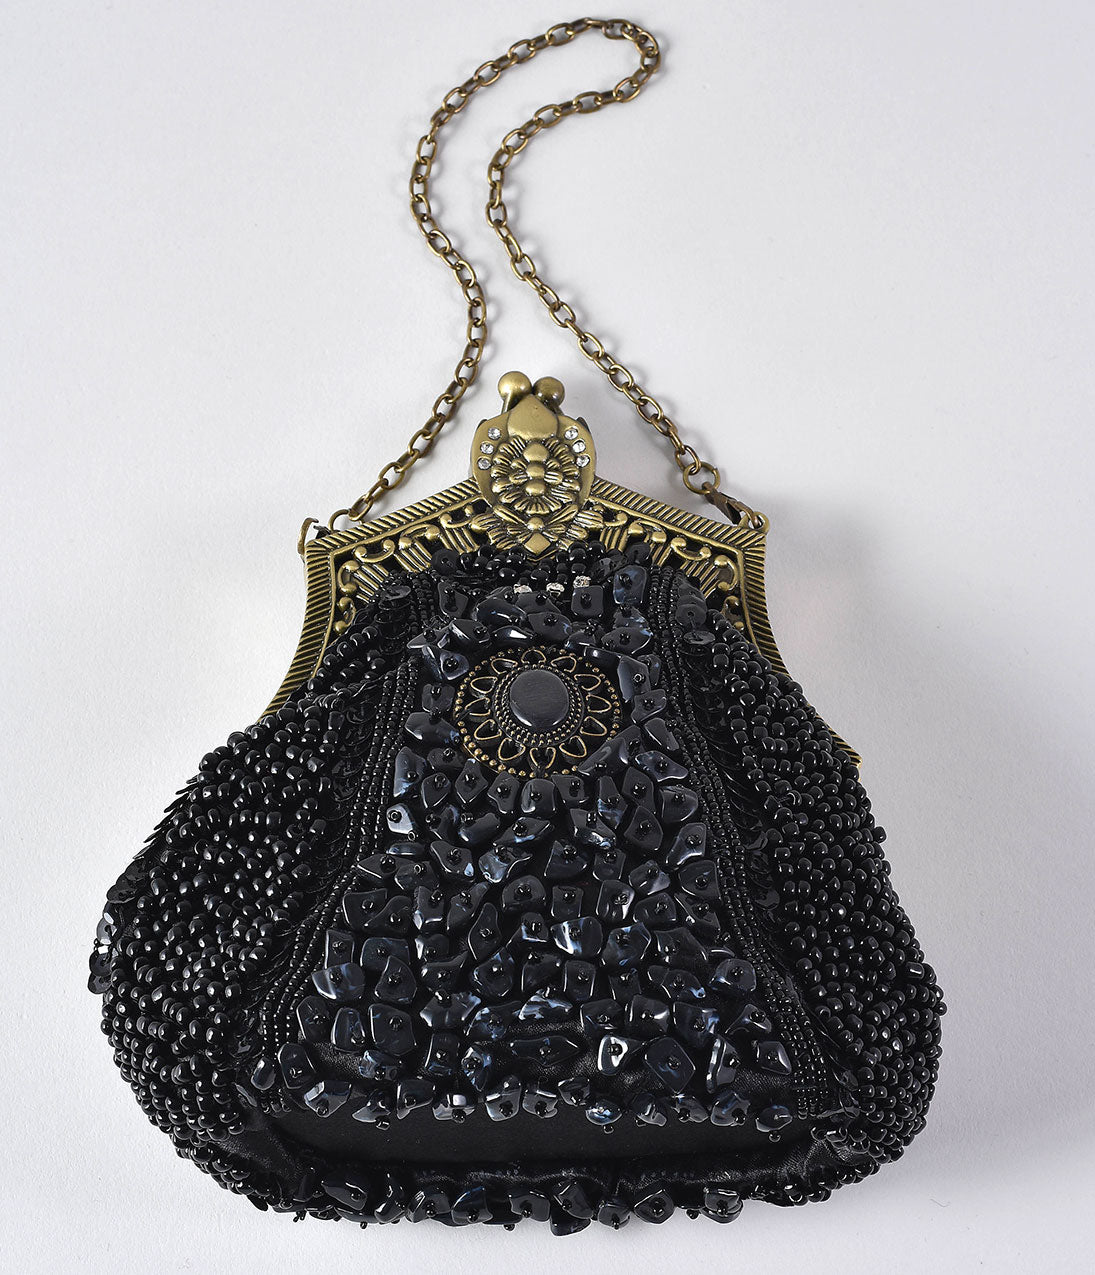 1920s Handbags, Purses, and Shopping Bag Styles Unique Vintage 1920S Style Black Beaded Top Frame Flapper Purse $72.00 AT vintagedancer.com